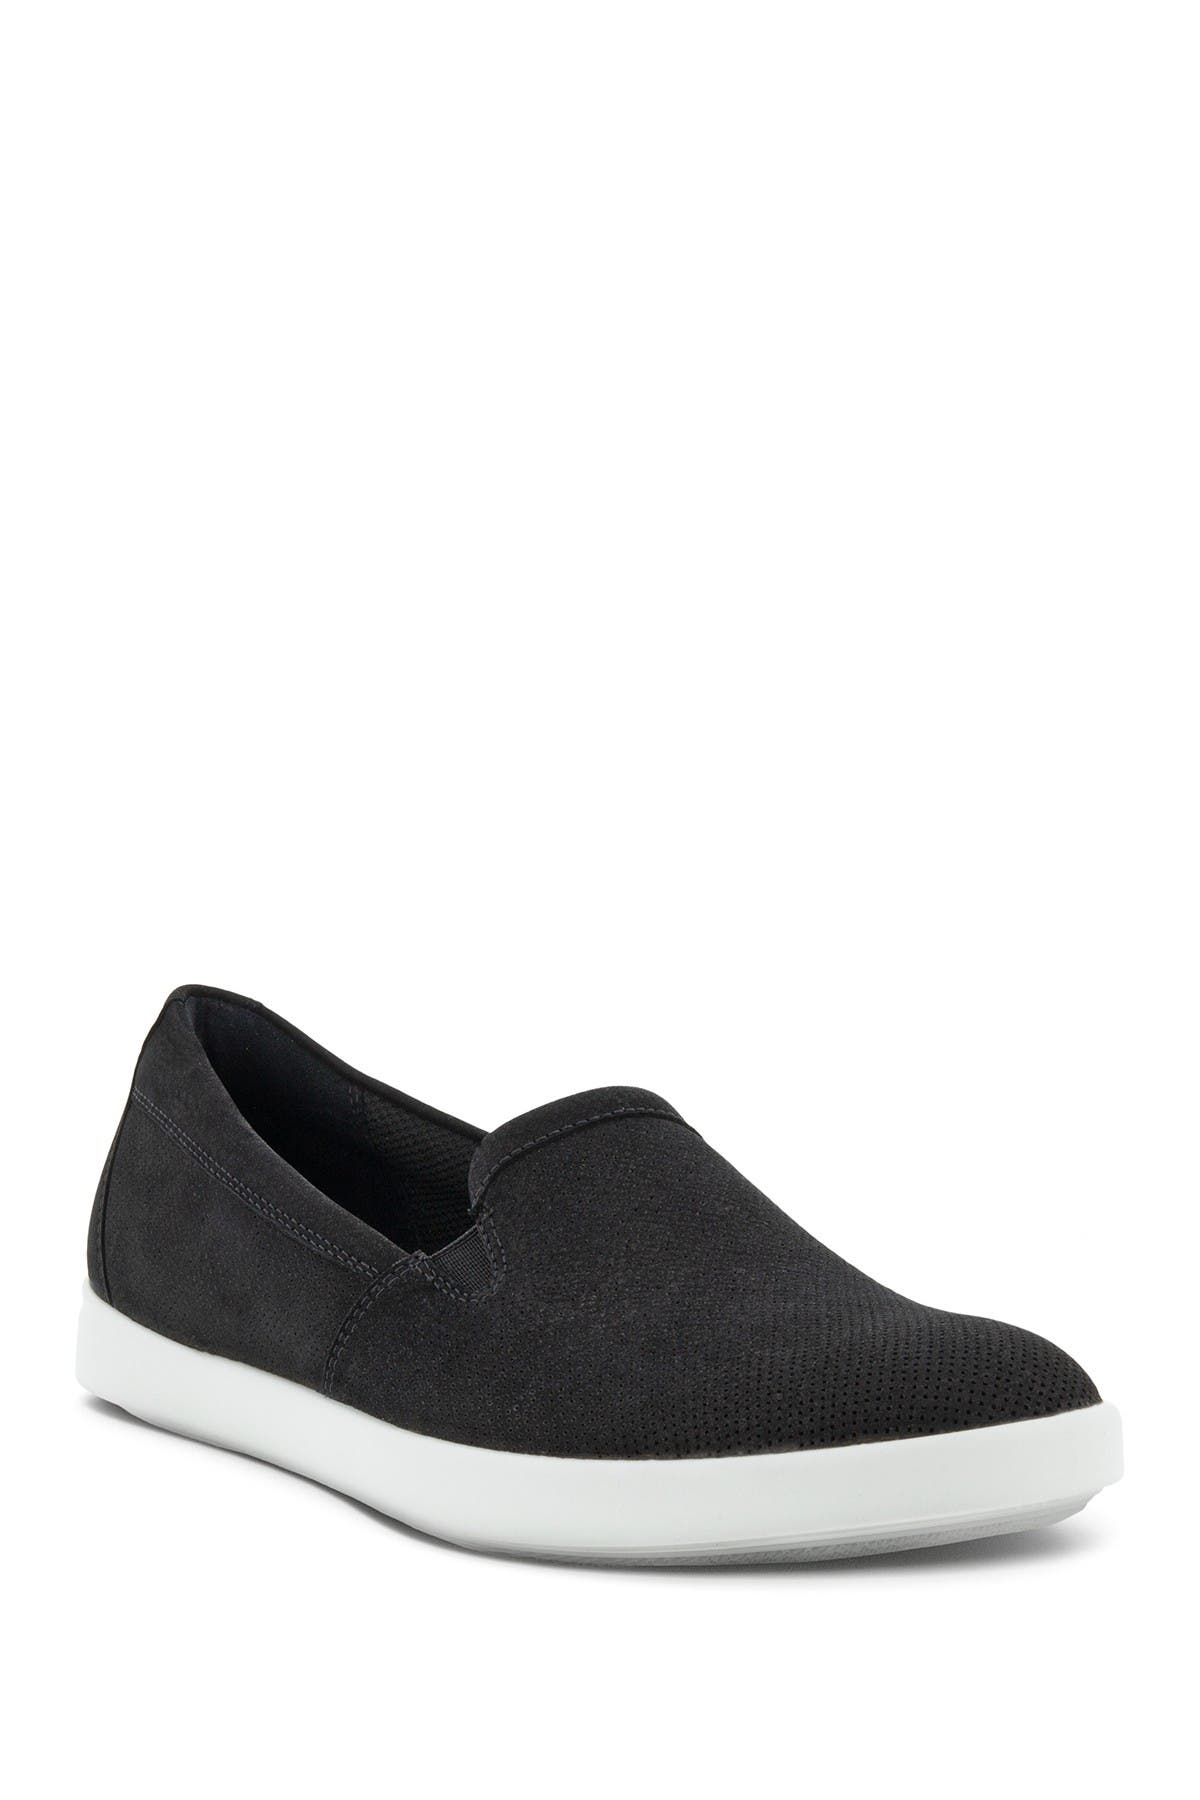 Ecco BARENTZ SLIP-ON LOAFER